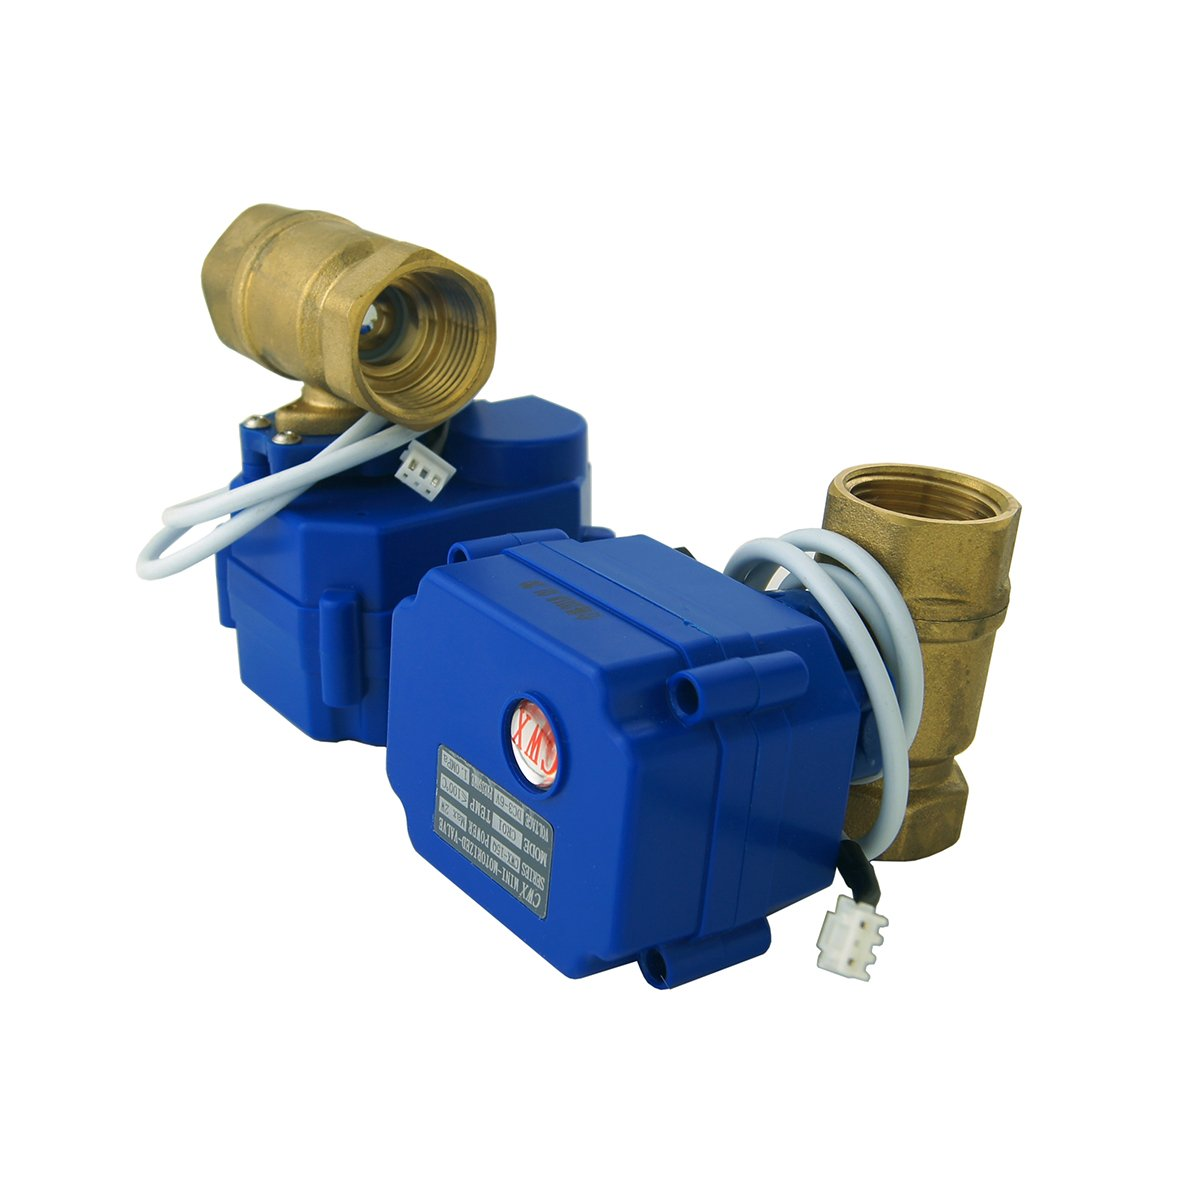 E-SDS Automatic Water Leak Shut Off Valve System,Water Leak Detector with 2 Valves,2 Sensors and Sounds Alarm,for Pipes 3/4 NPT,Flood Prevention for ...